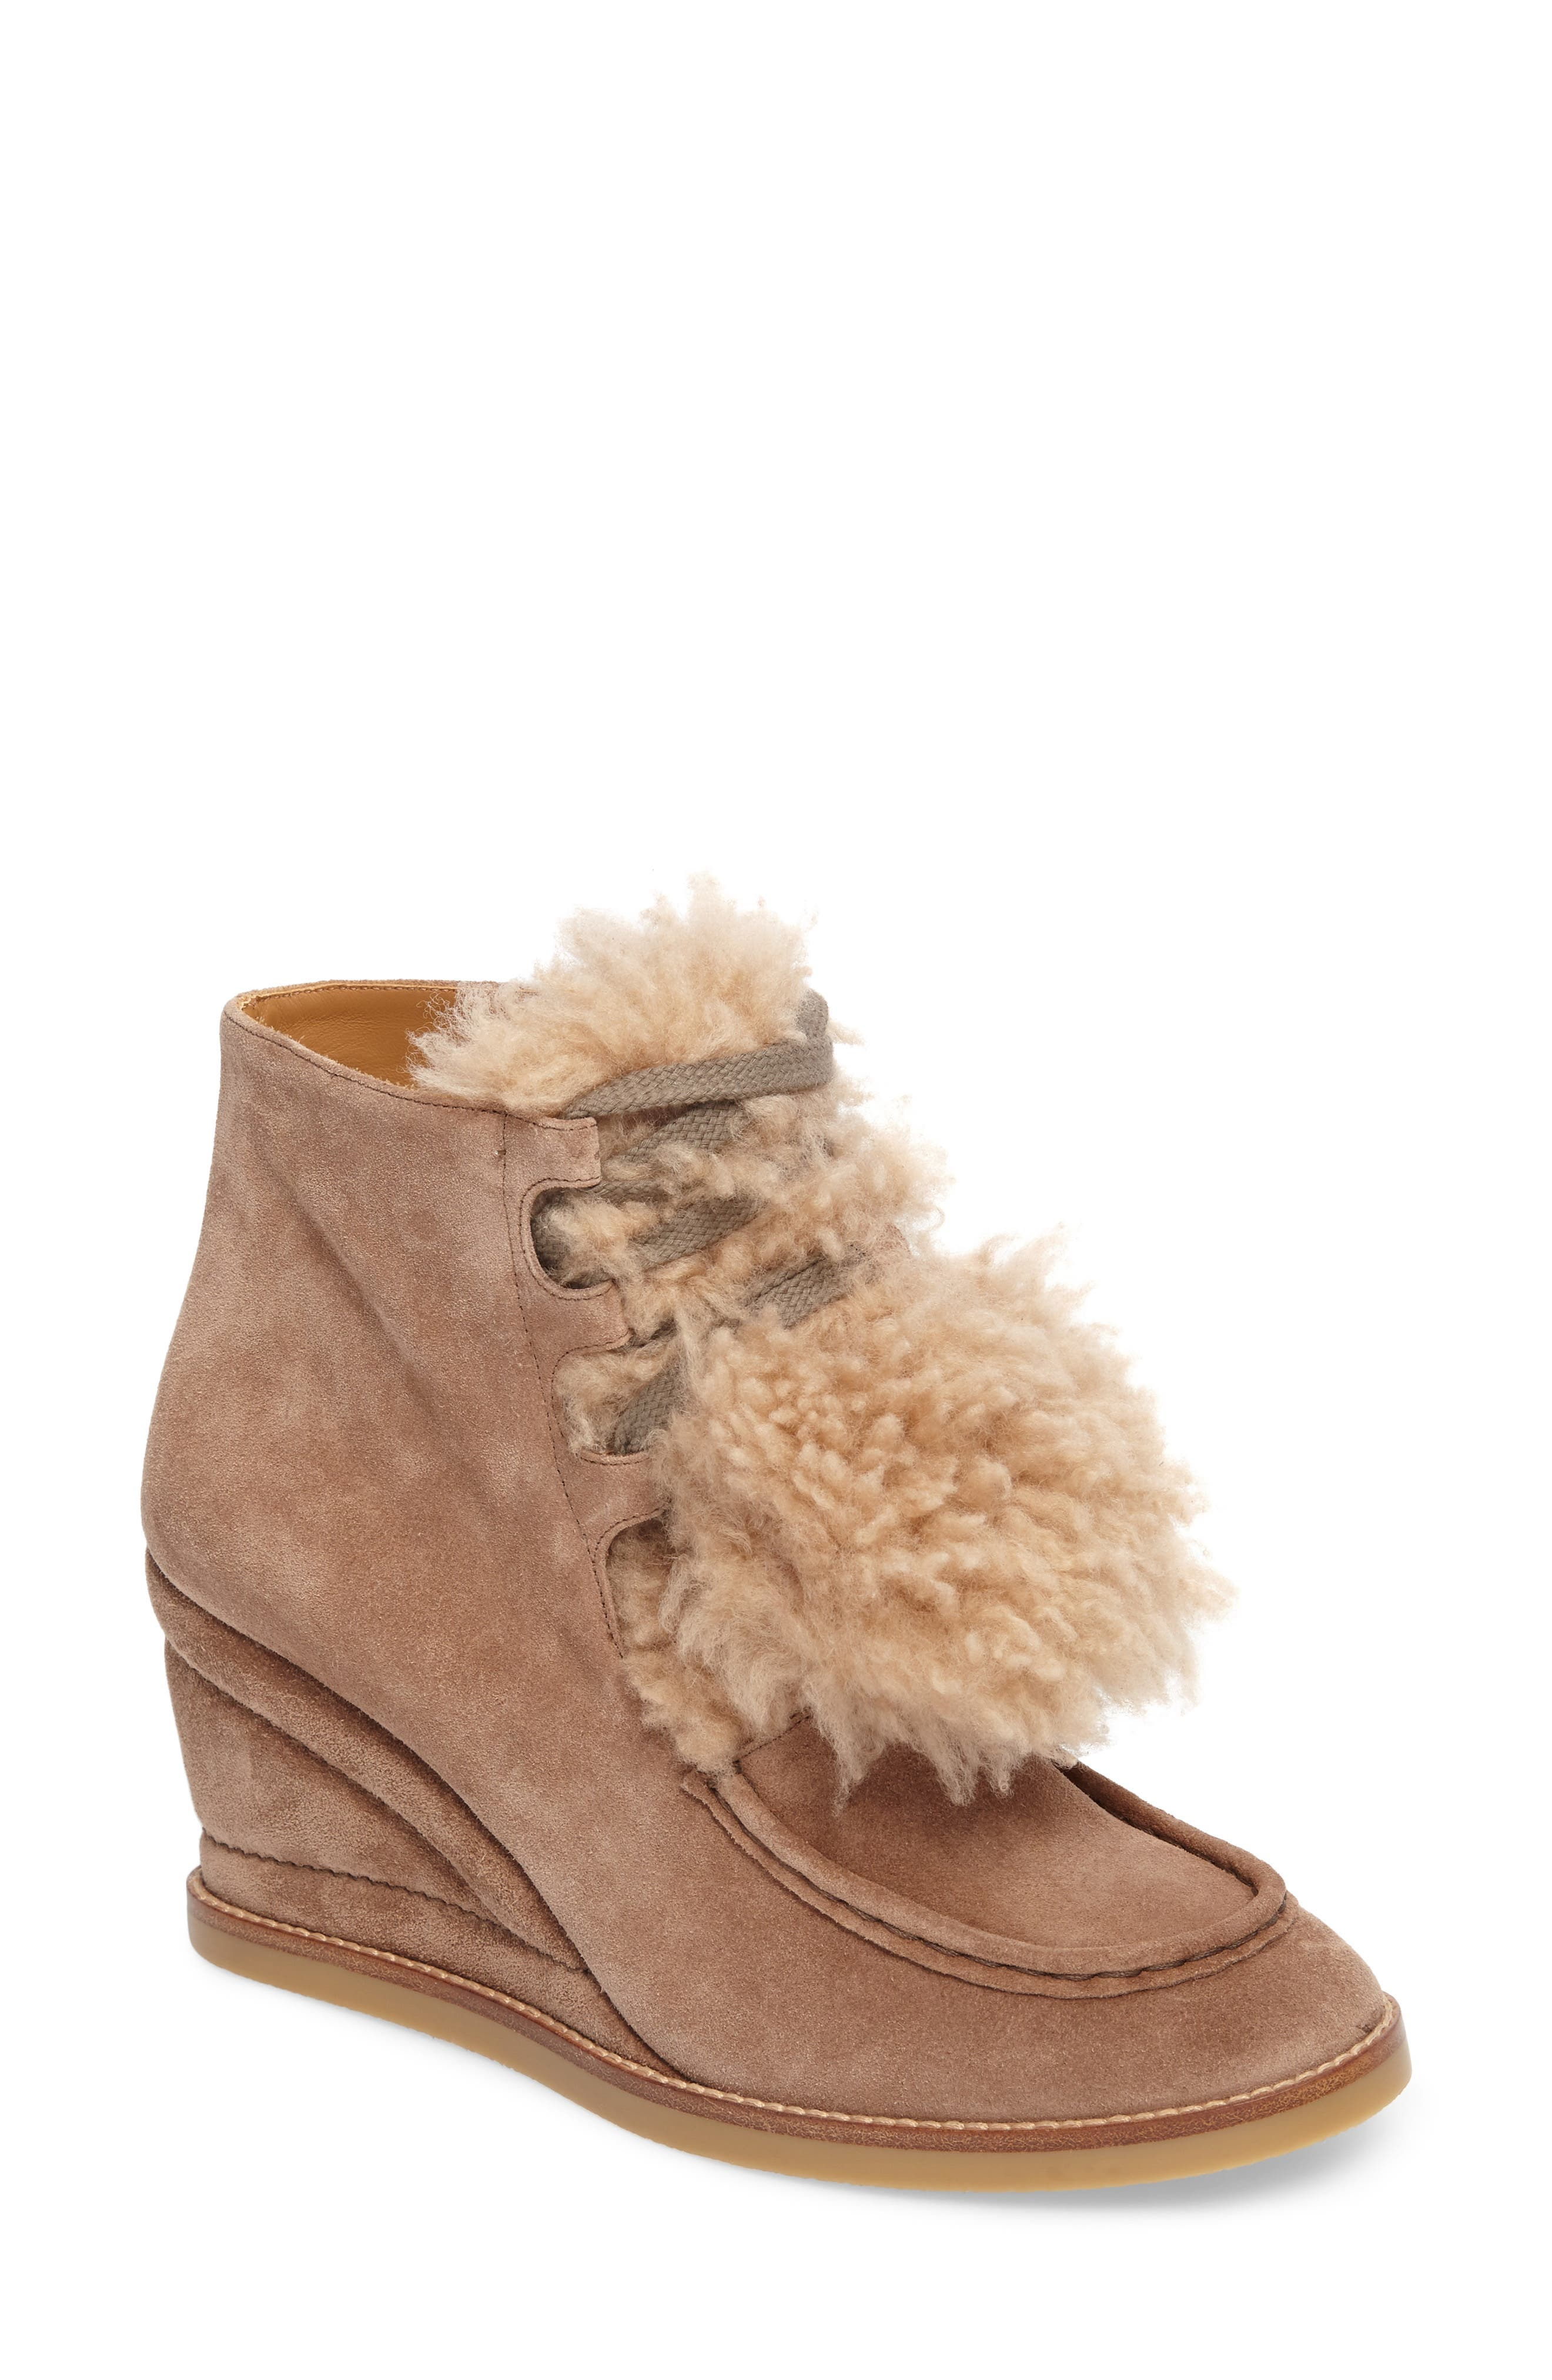 Peggy Genuine Shearling Wedge Bootie,                         Main,                         color, Latte Brown Suede